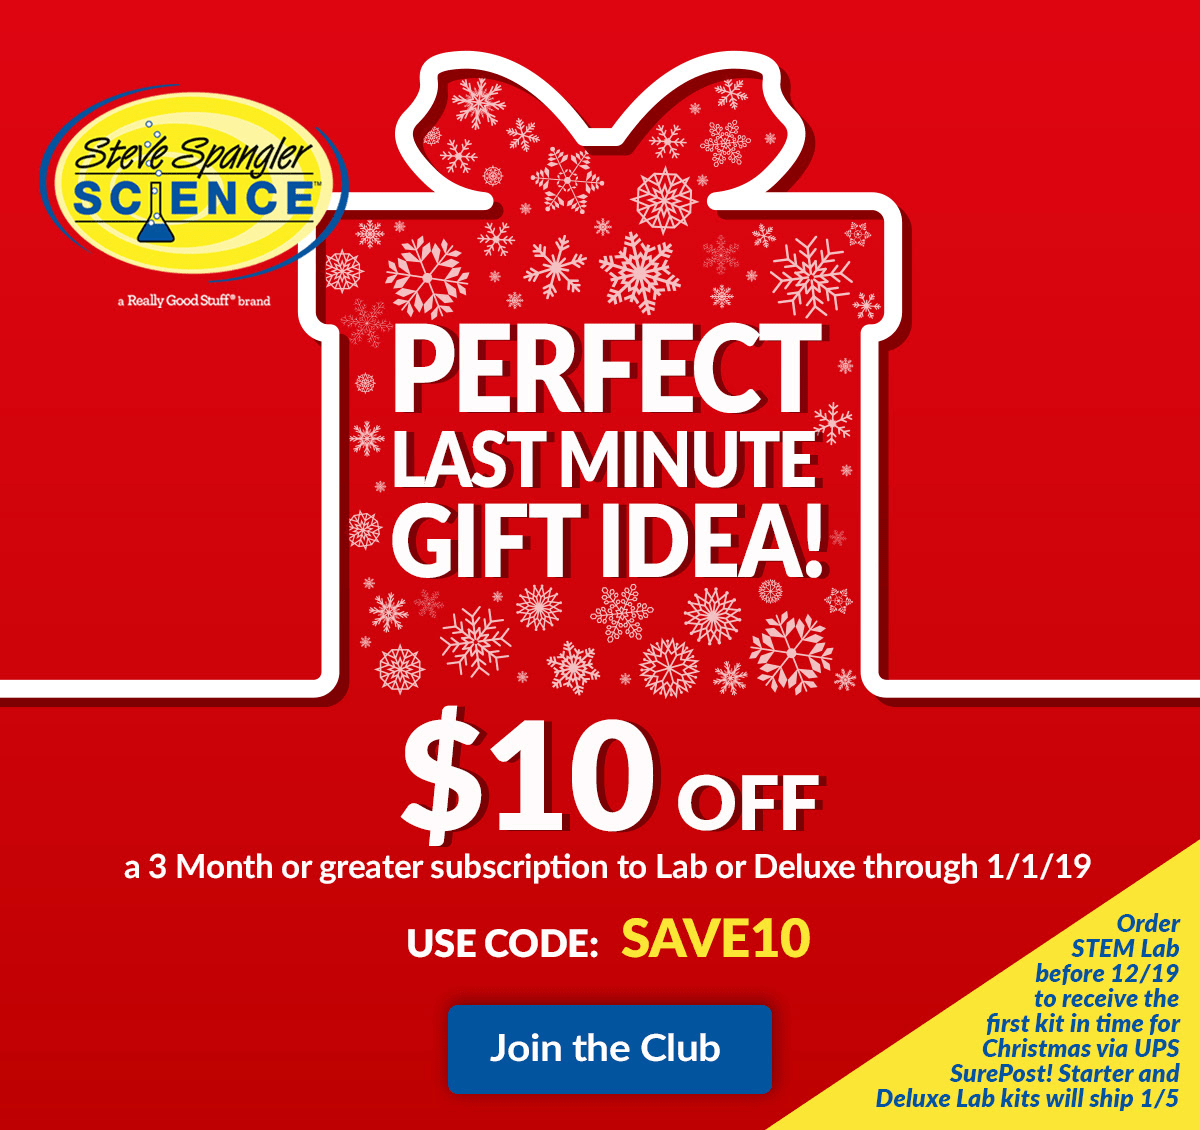 Spangler Science Club Last Minute Gift Sale: Save $10 On 3+ Month Subscriptions!